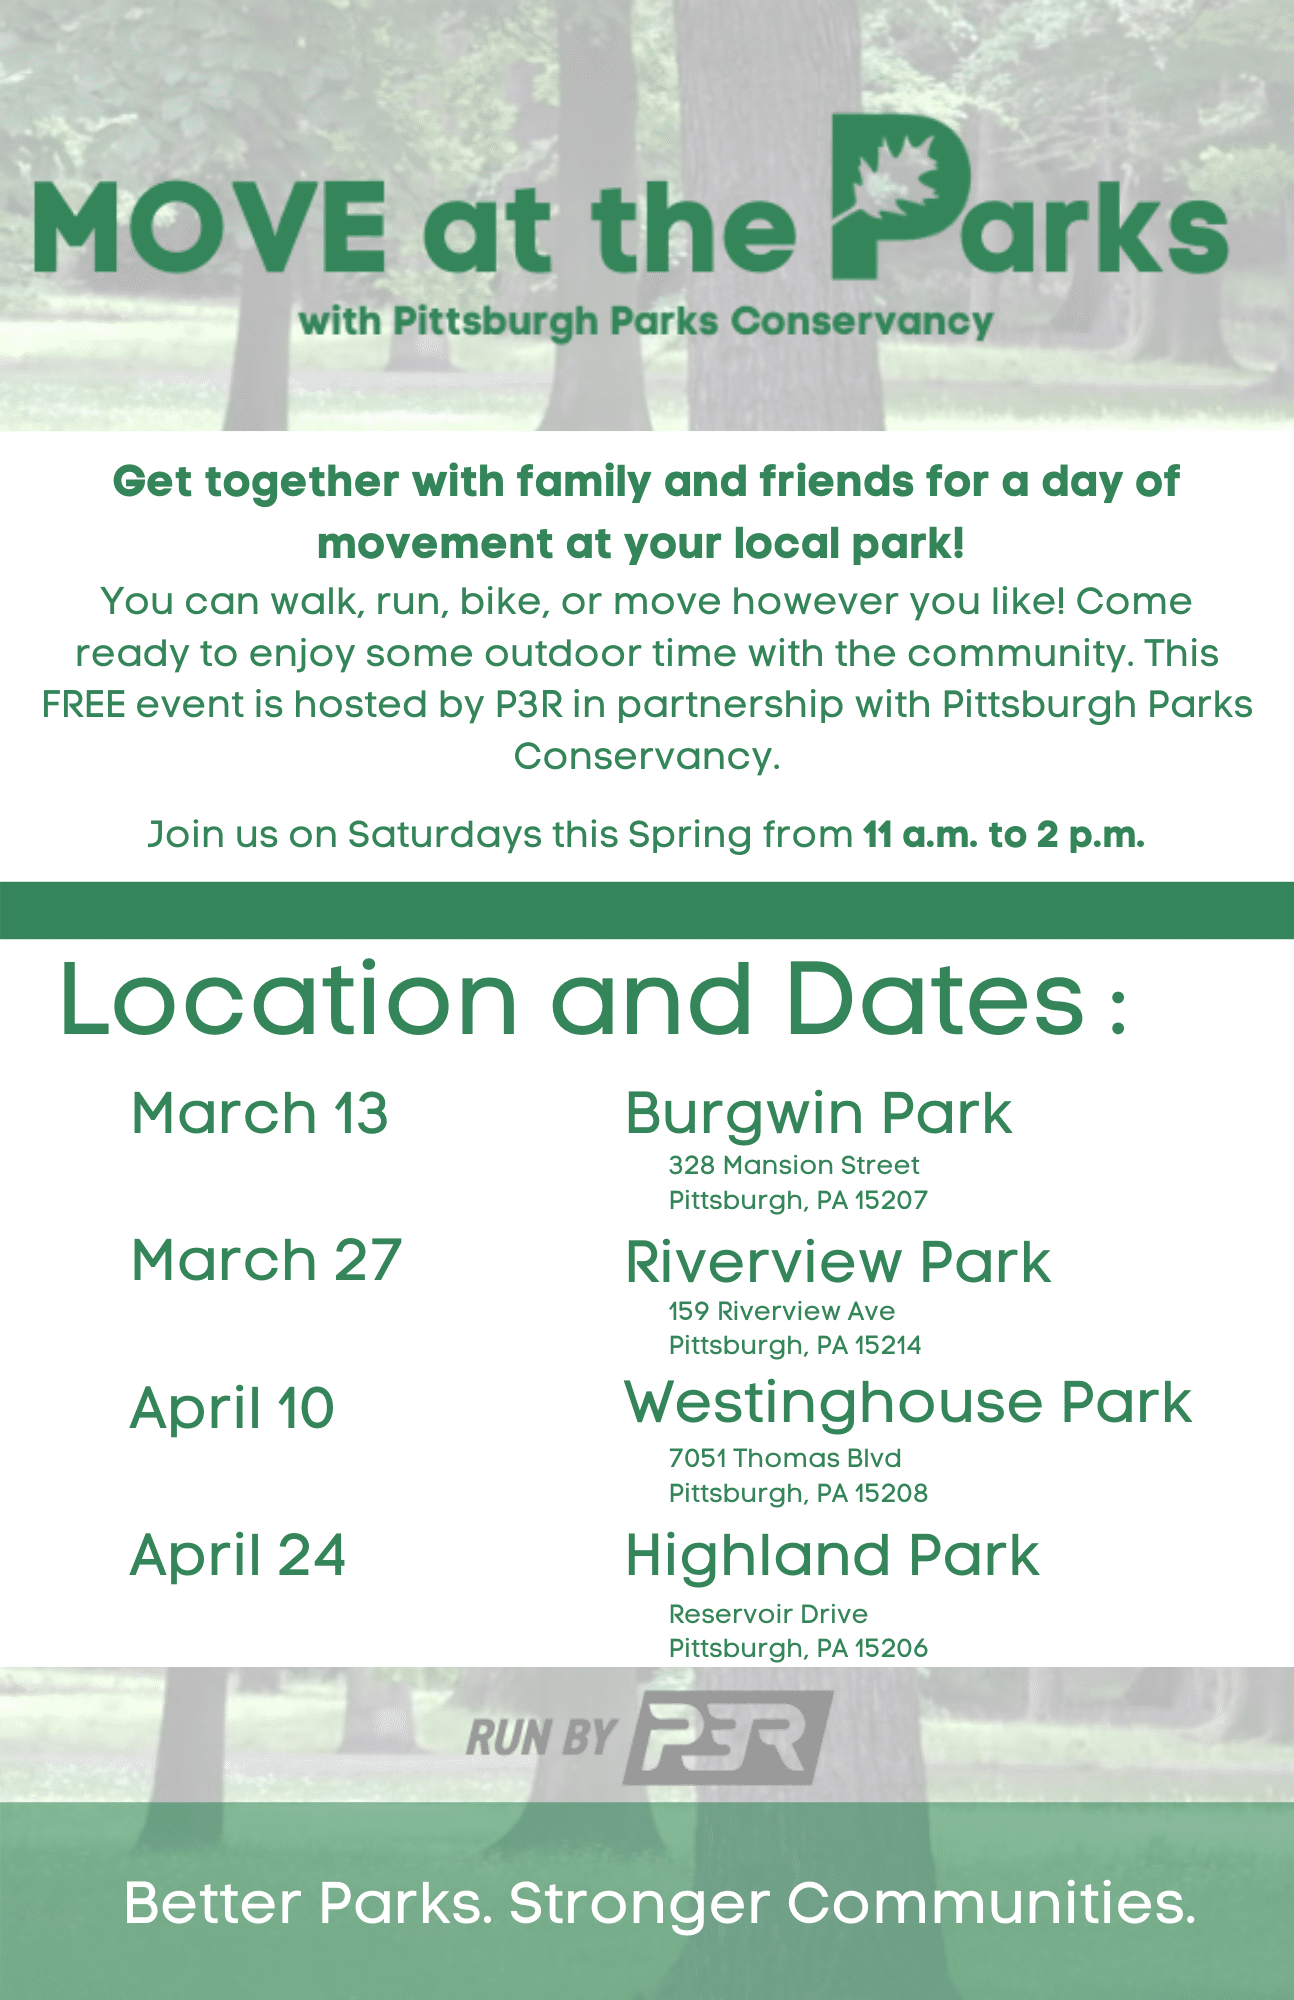 Move at the Parks Event Dates